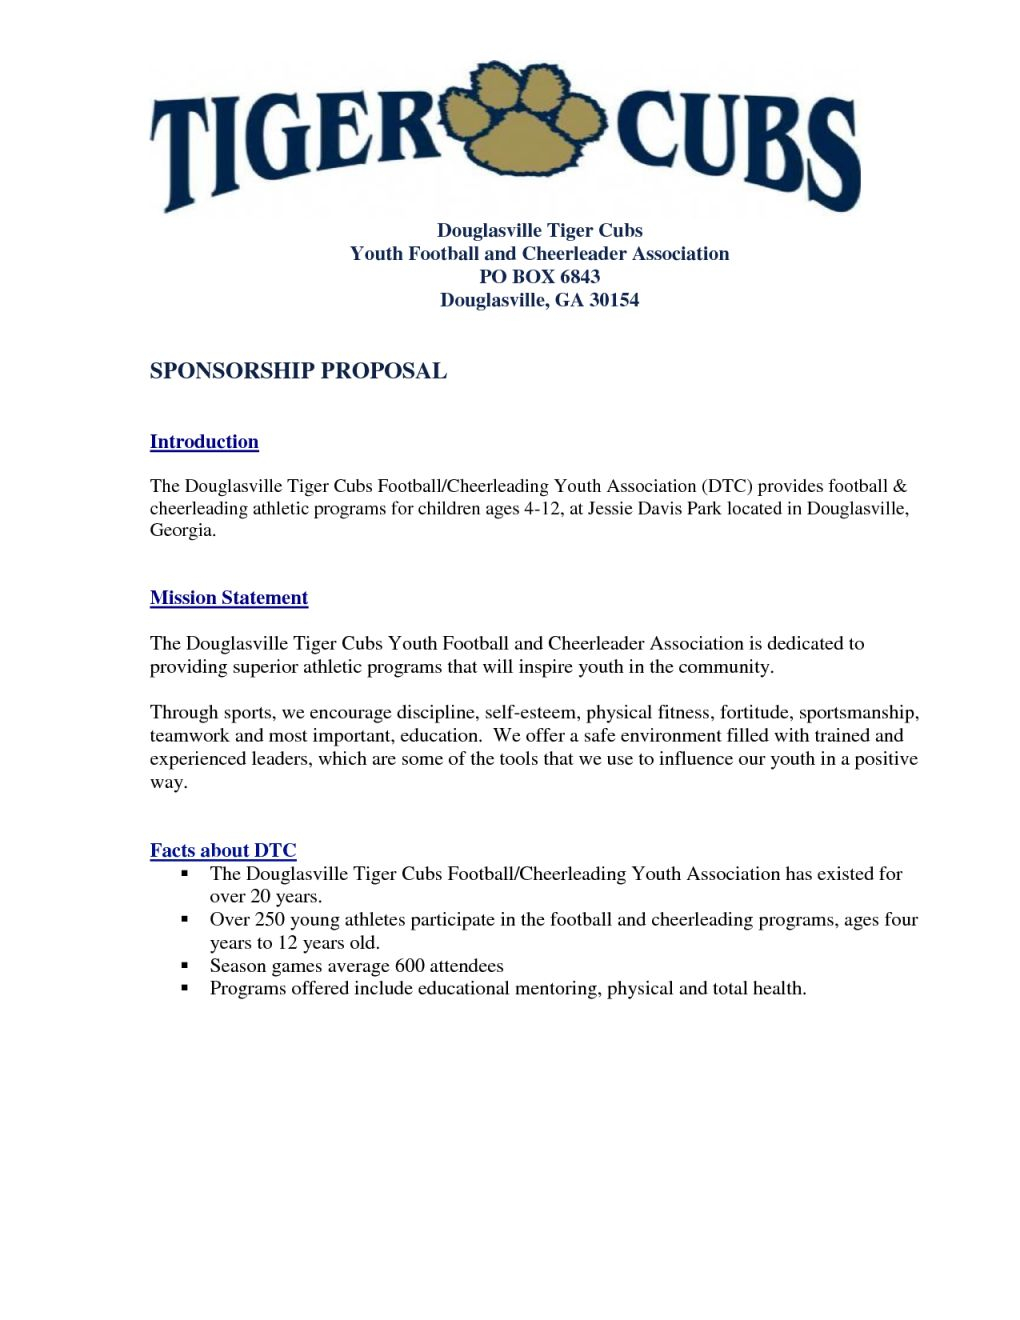 Baseball Sponsorship Letter Template - Fabulous Sports Sponsorship Proposal Template Ch06 – Documentaries